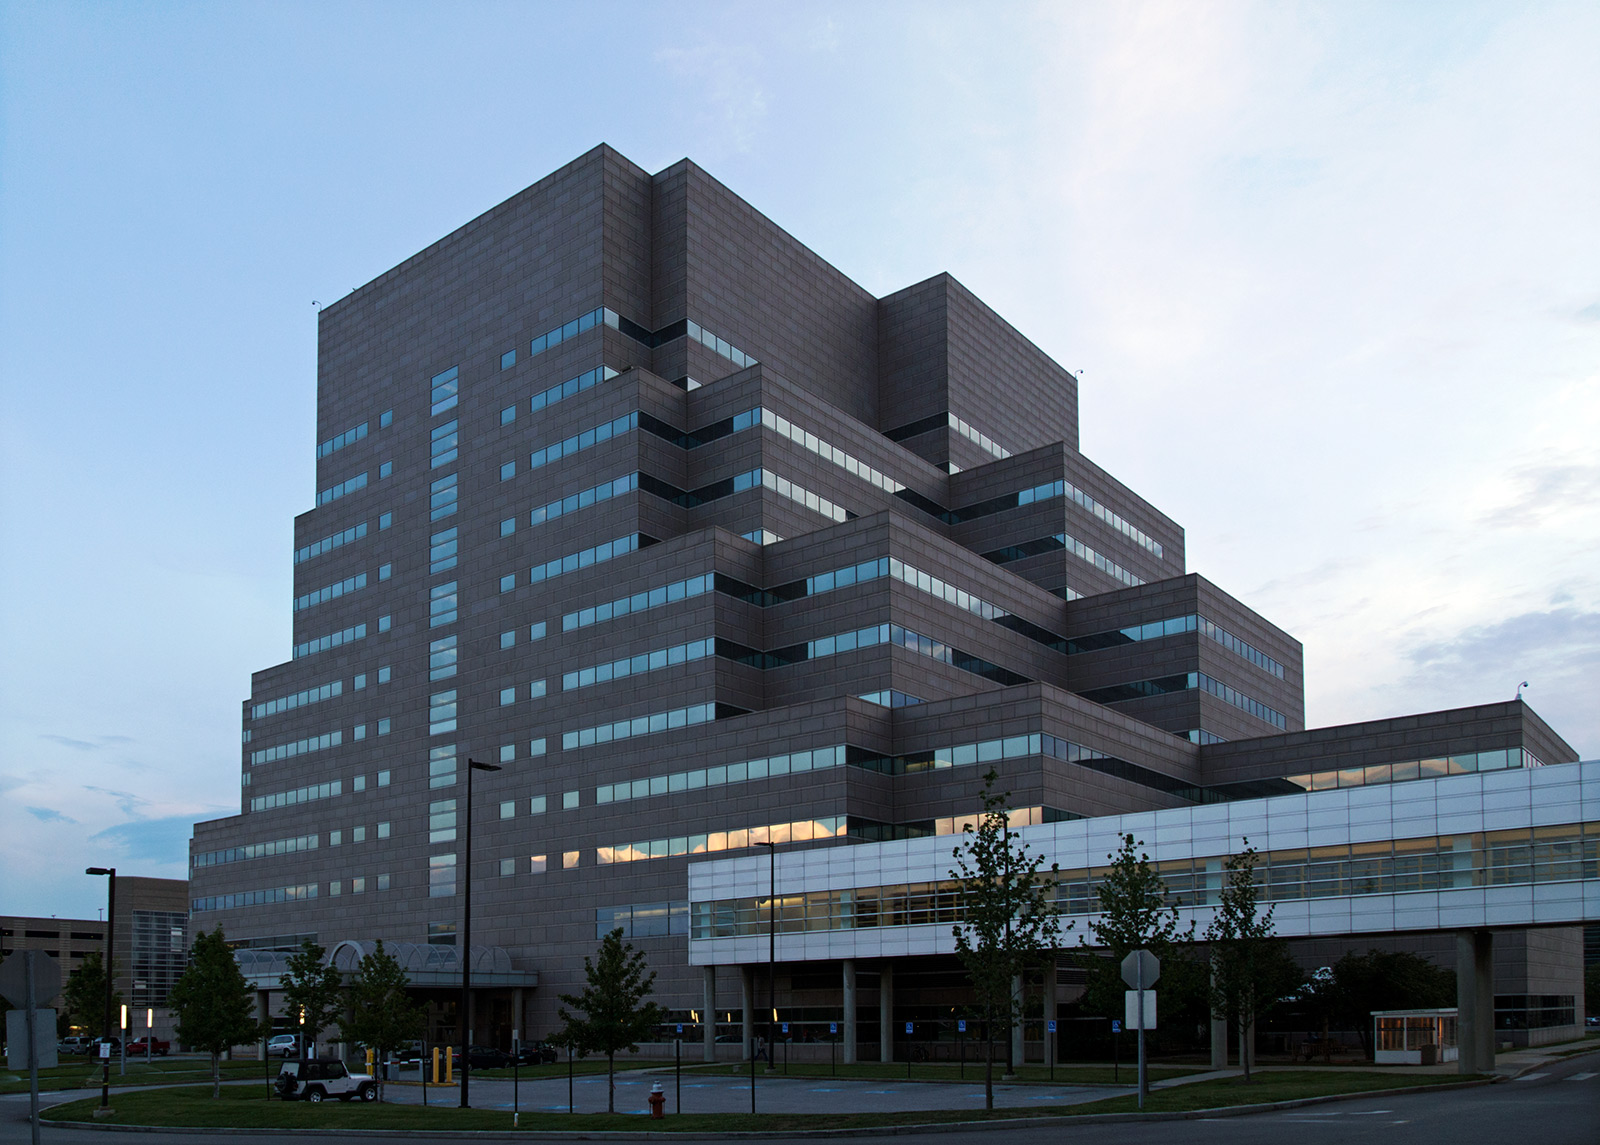 20140901. The Crile Building at the Cleveland Clinic medical cen